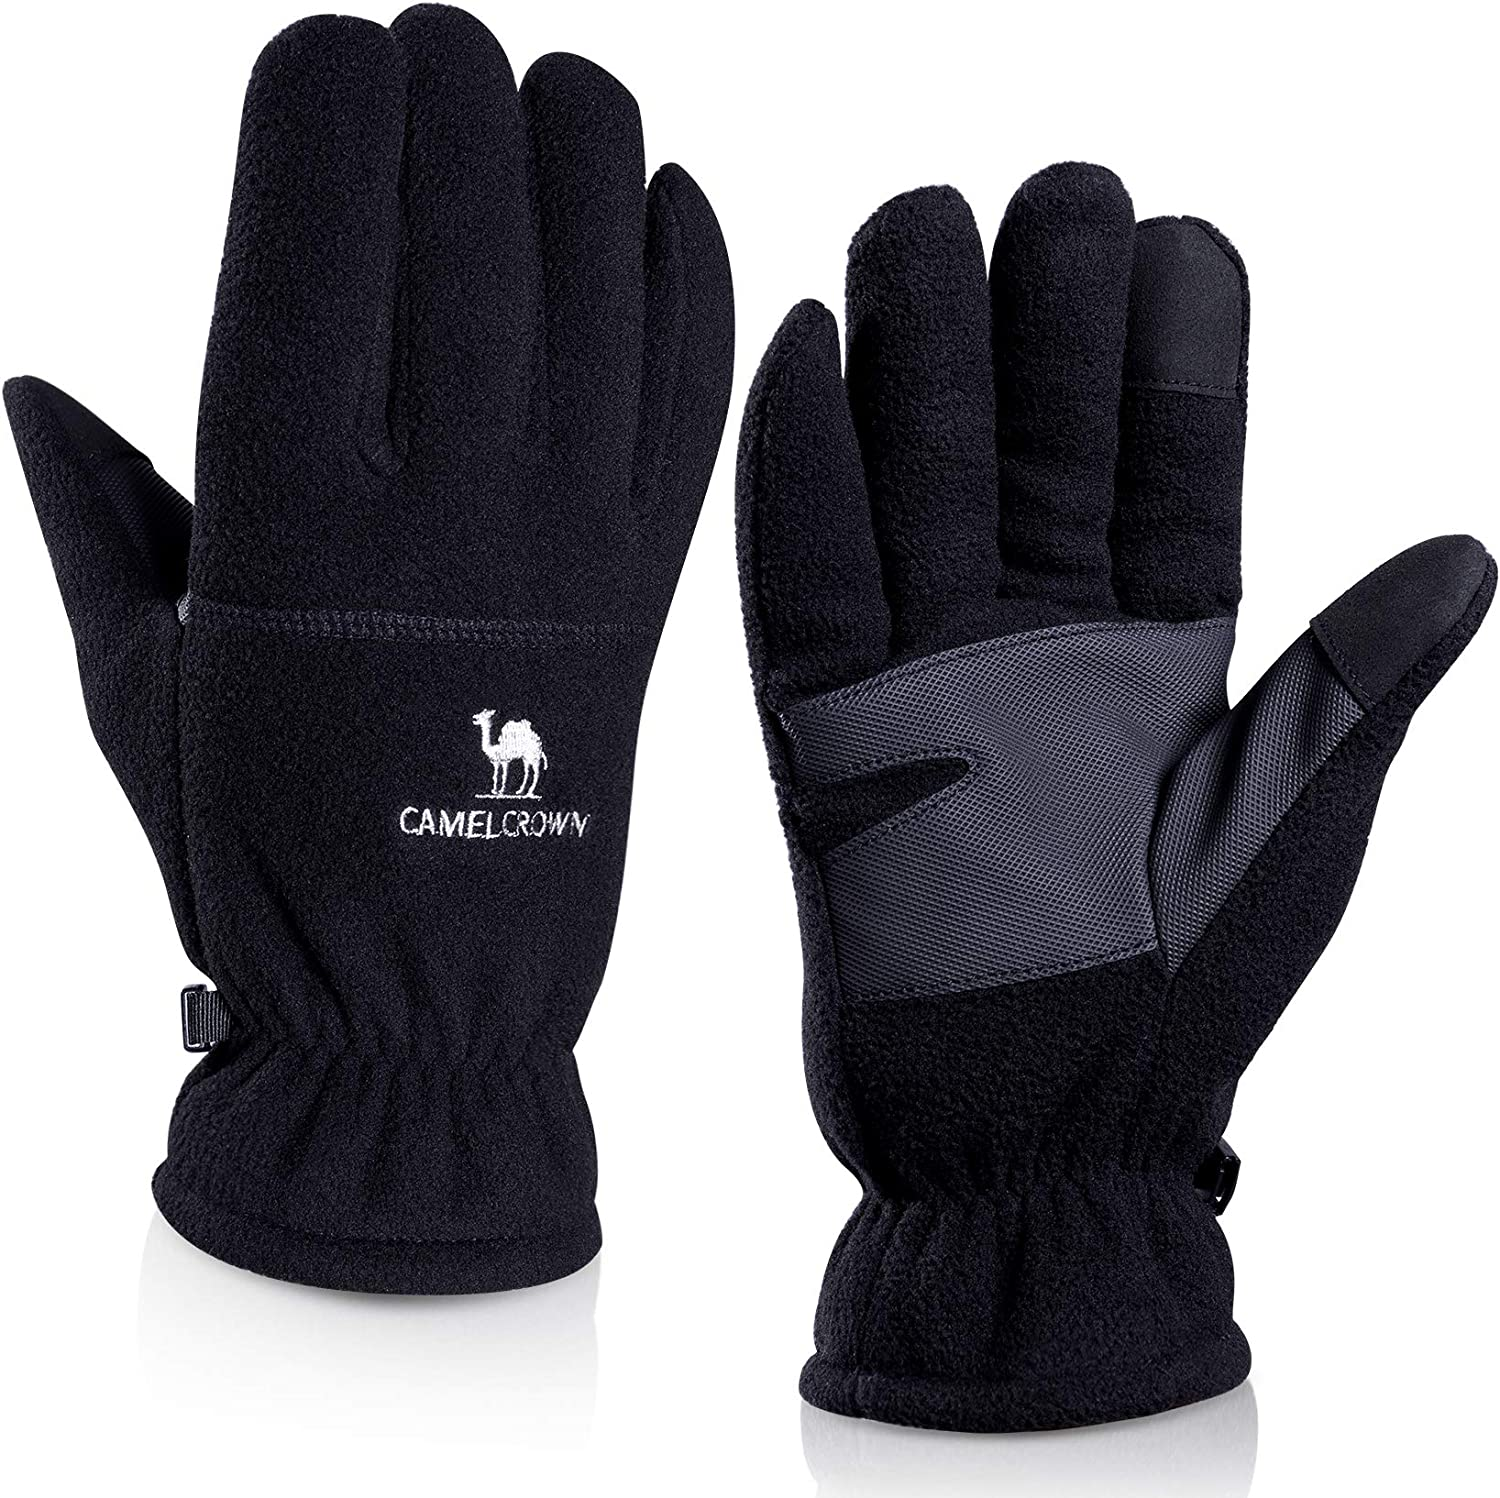 CAMEL CROWN Winter Gloves Polar Fleece Touchscreen Gloves for Outdoor Windproof Coldproof